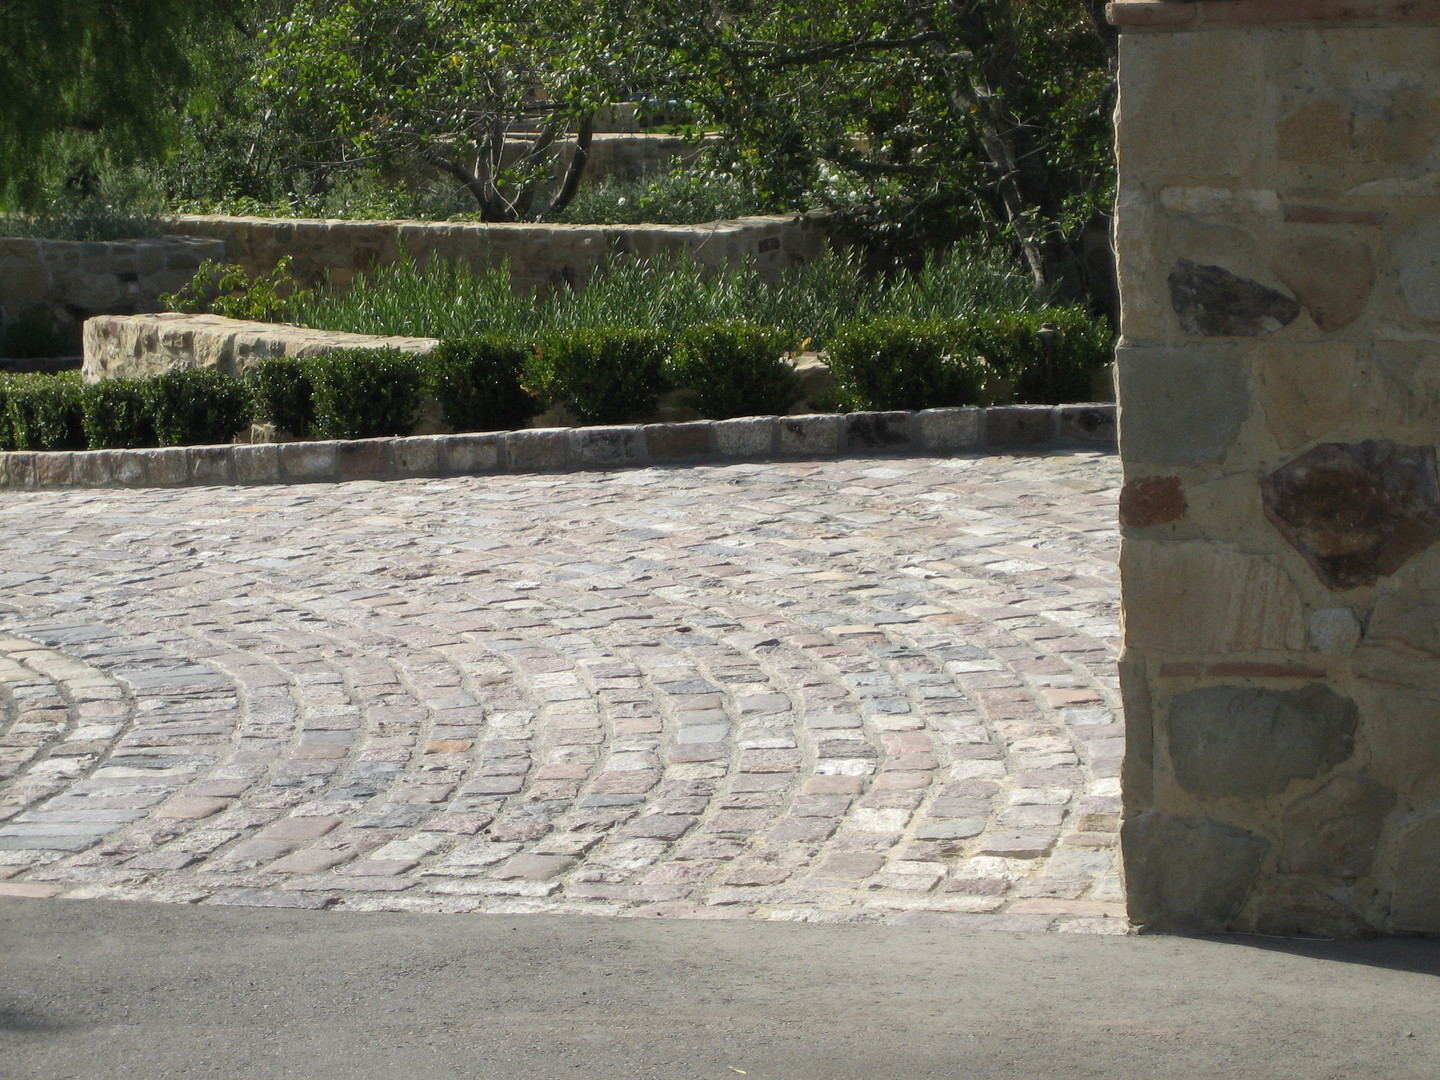 Stone block pavers